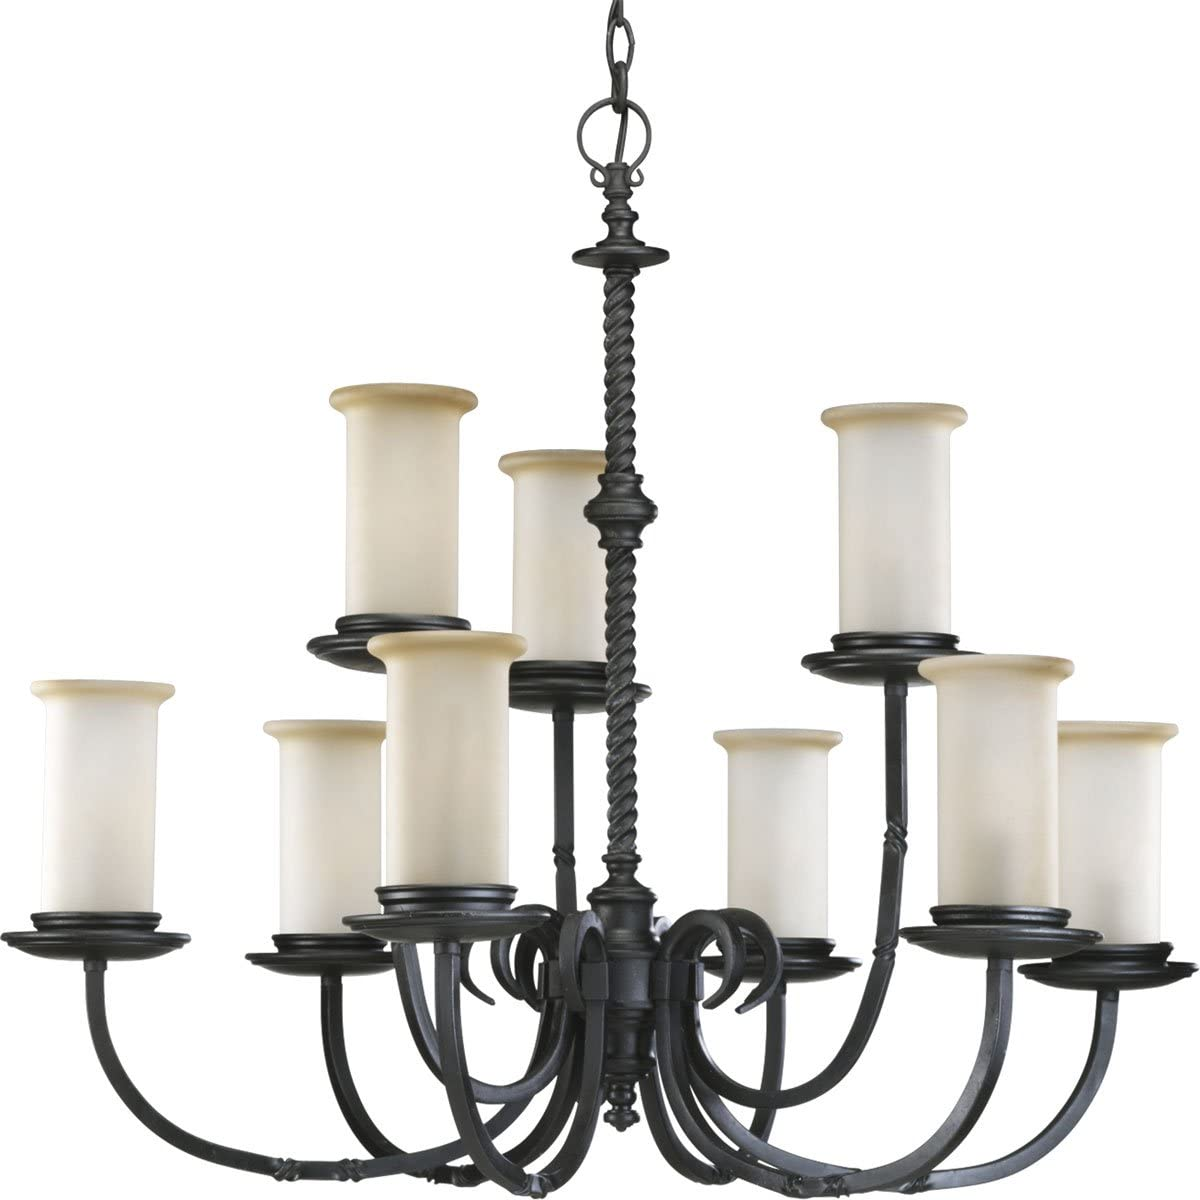 Progress Lighting P4179-80 9-Light Two-Tier Santiago Chandelier, 32 x 32 x 29 , Forged Black